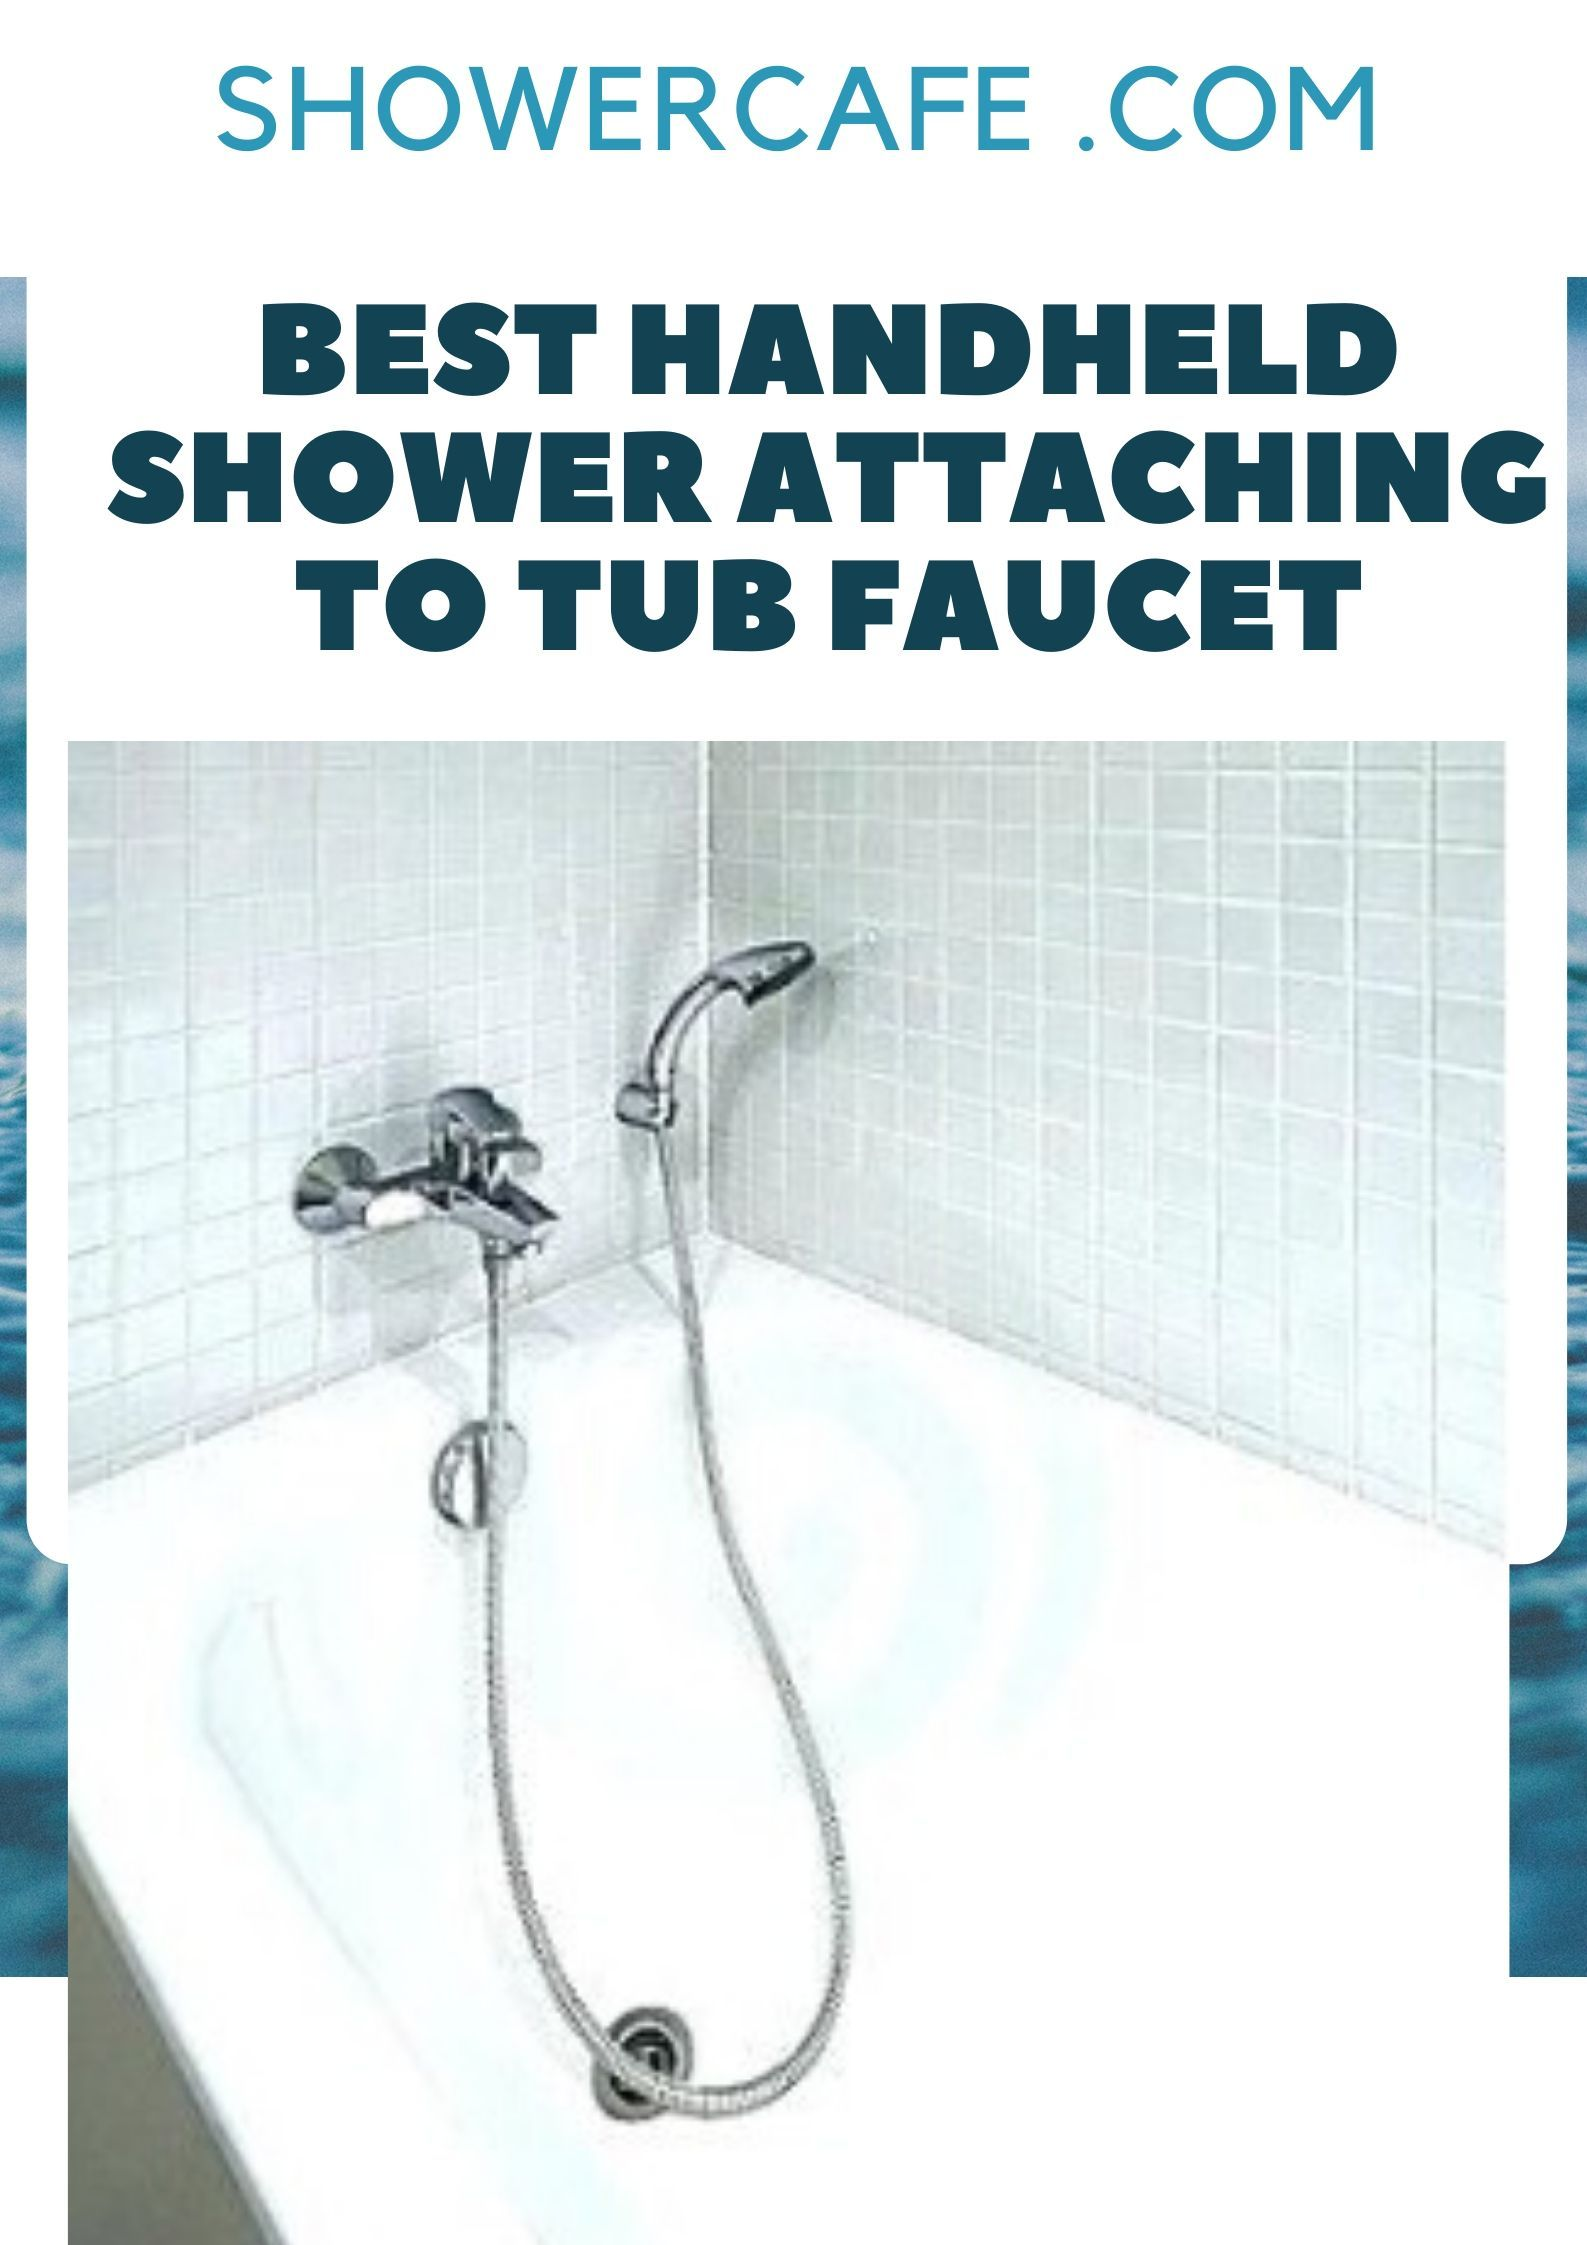 tub faucet hand held shower